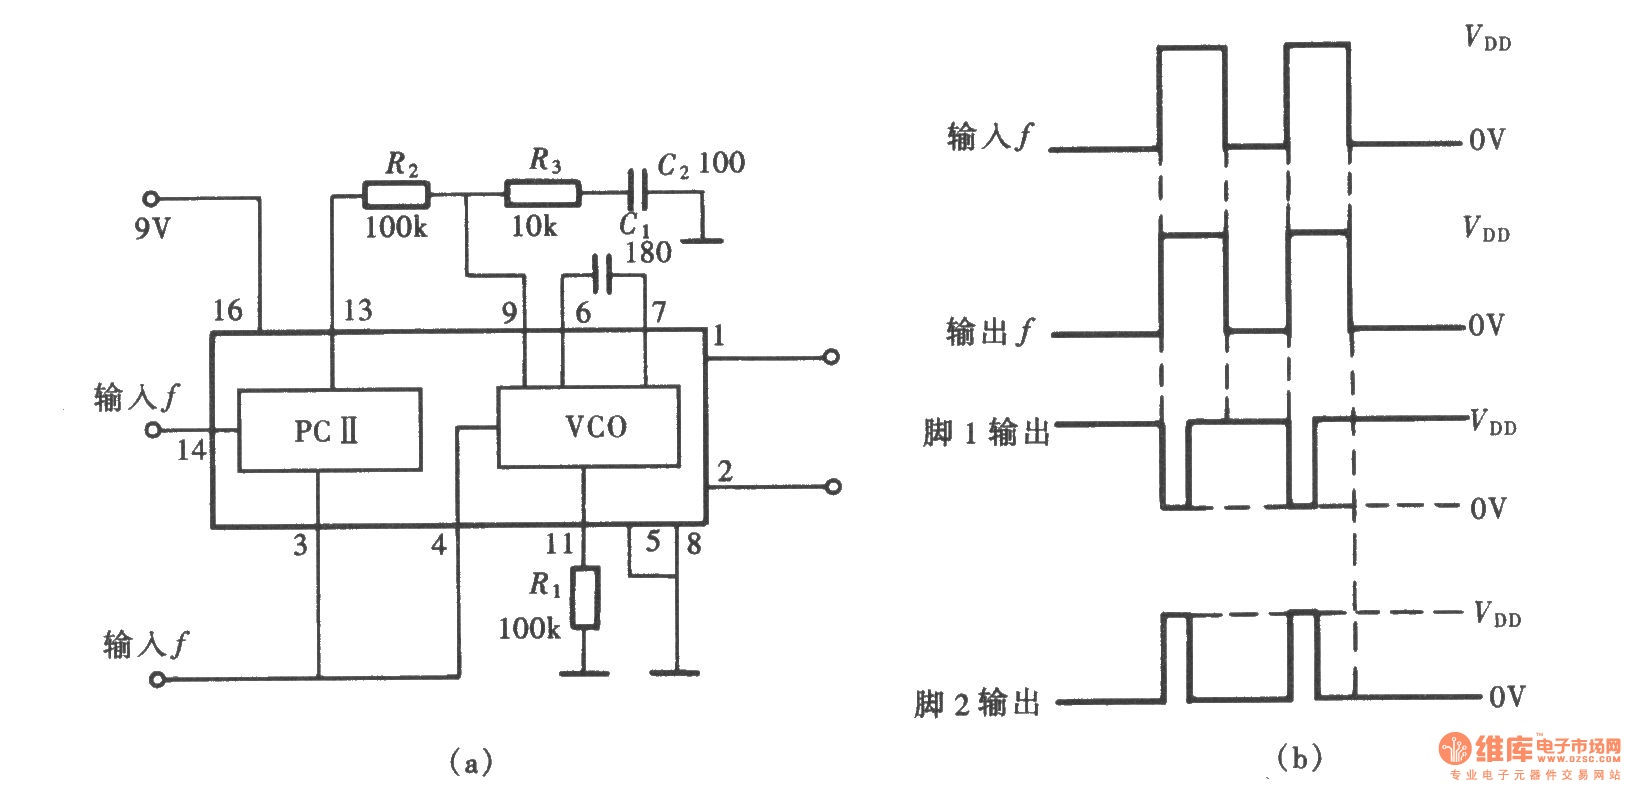 Frequency signal tracking circuit (PLL circuit) composed of CD4046 - schematic